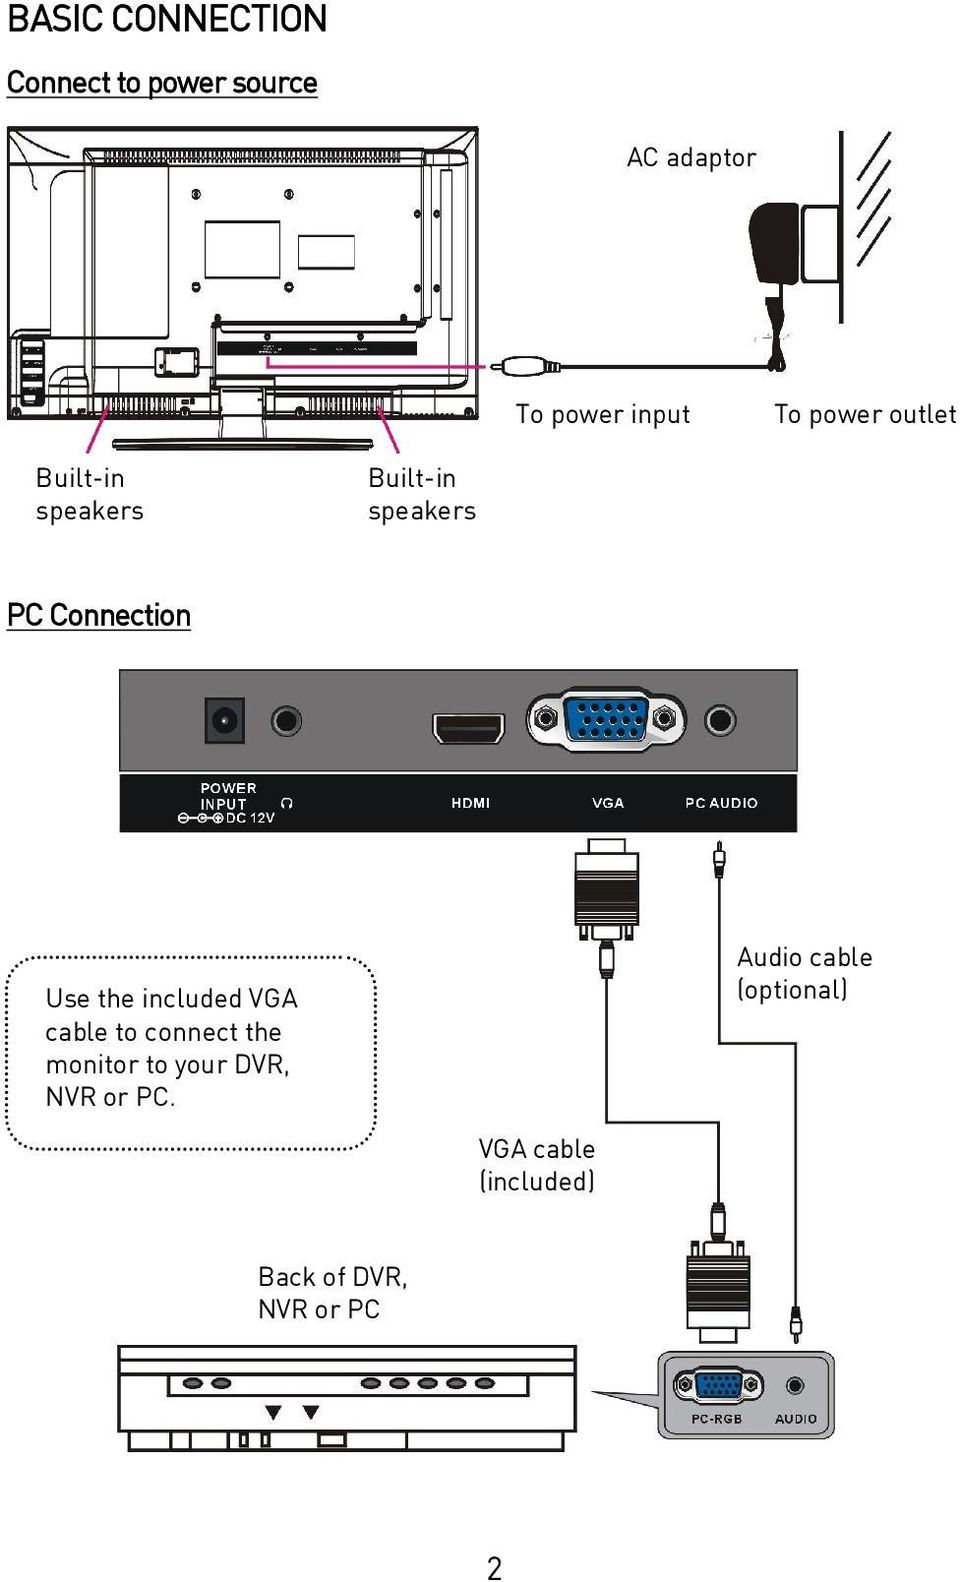 Use the included VGA cable to connect the monitor to your DVR, NVR